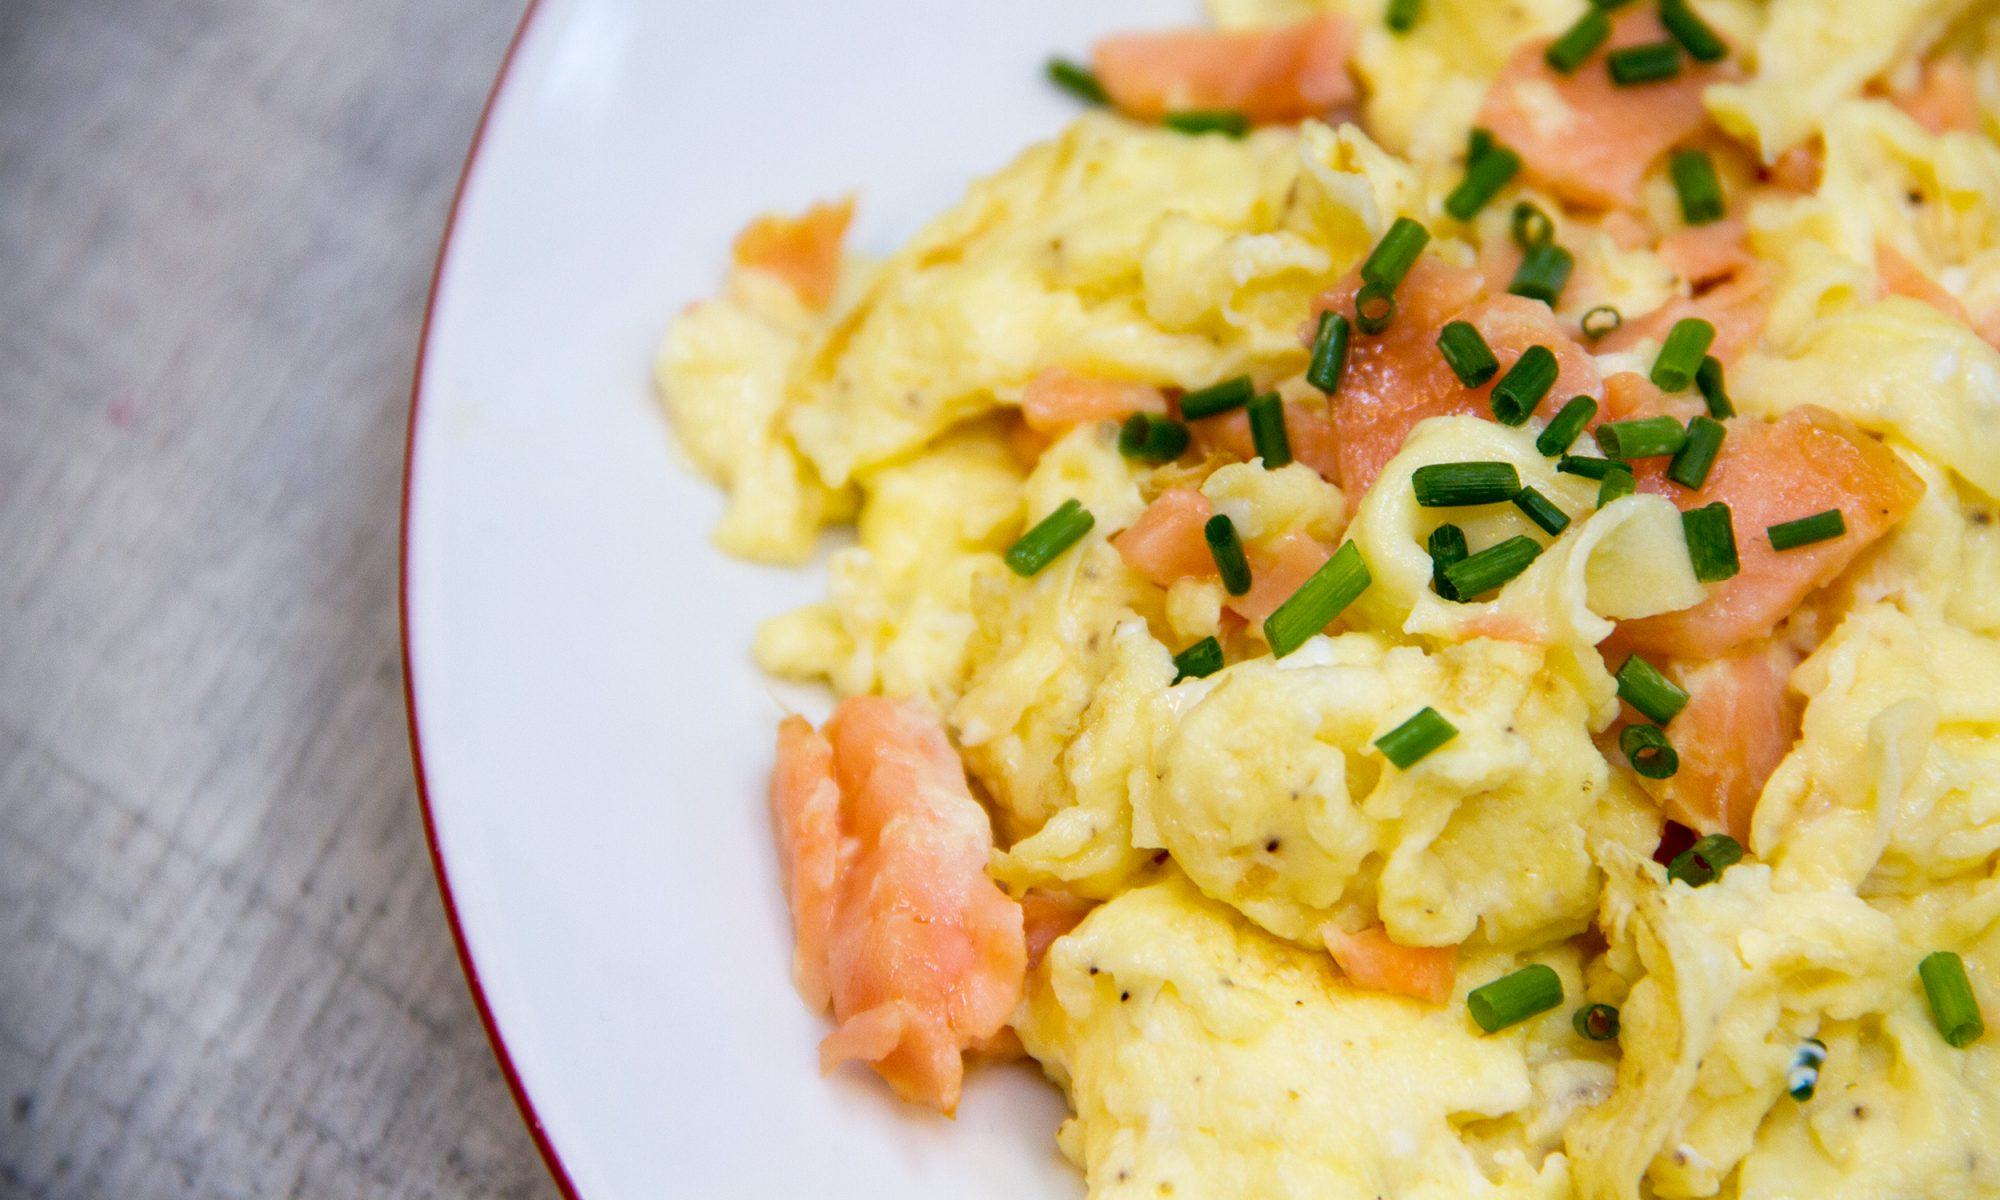 EC: Smoked Salmon Meets the World's Softest Scrambled Eggs